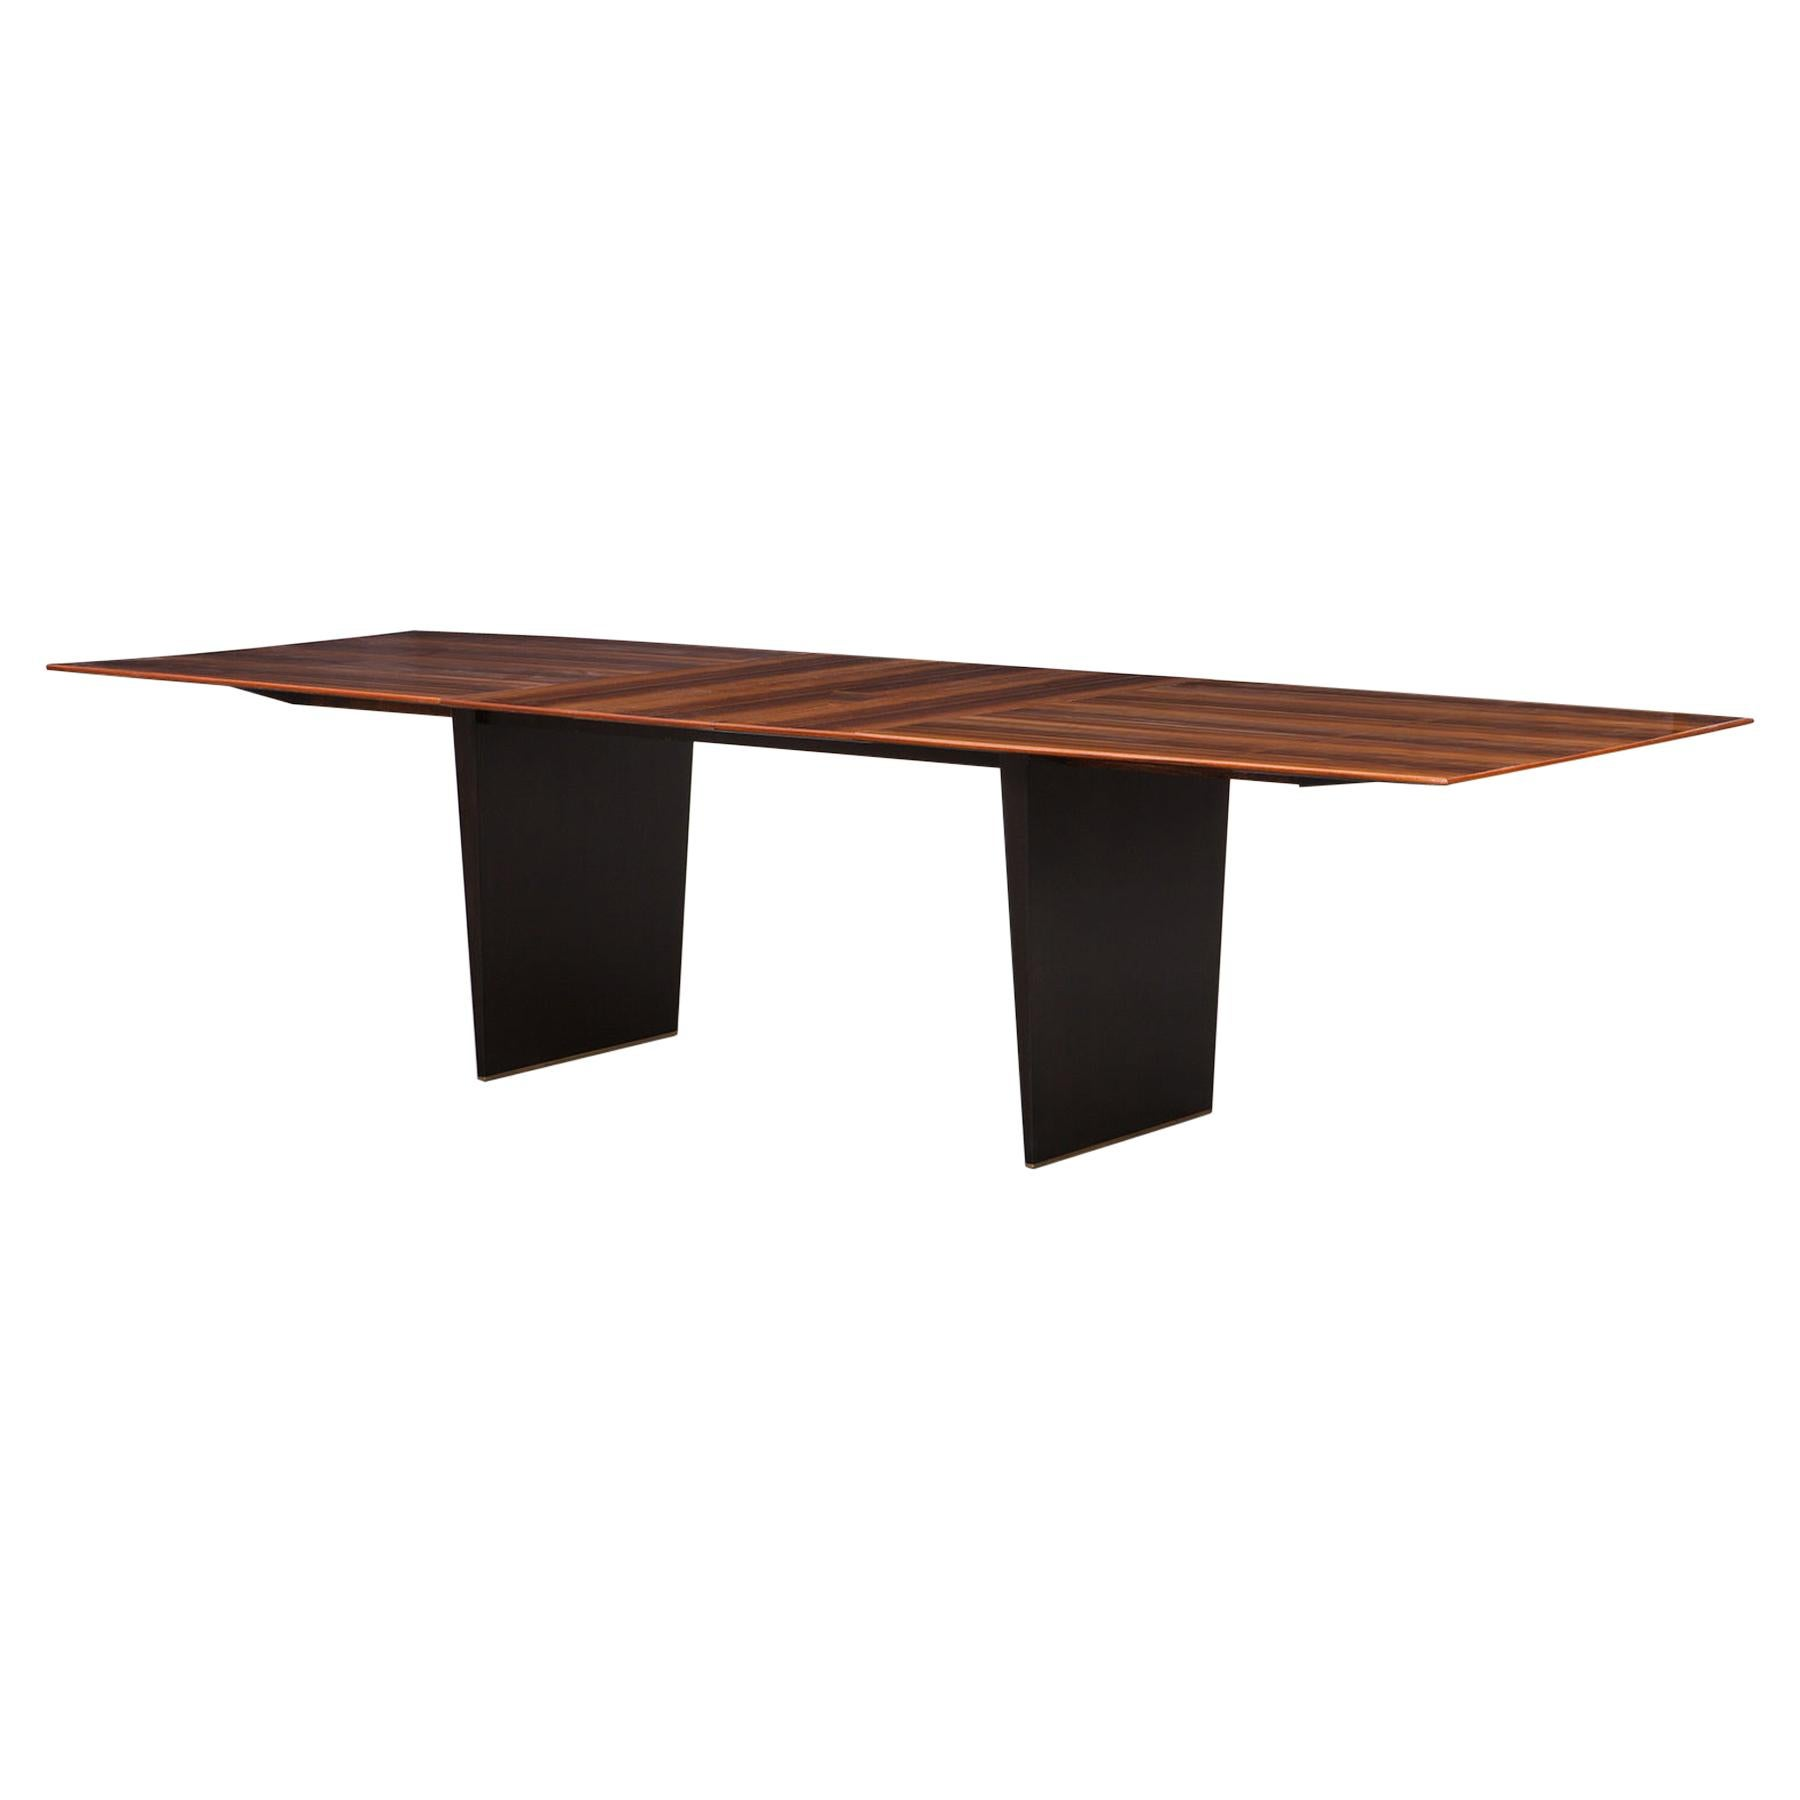 1960s Brown Tawi Wood Dining Table by Edward Wormley 'B'